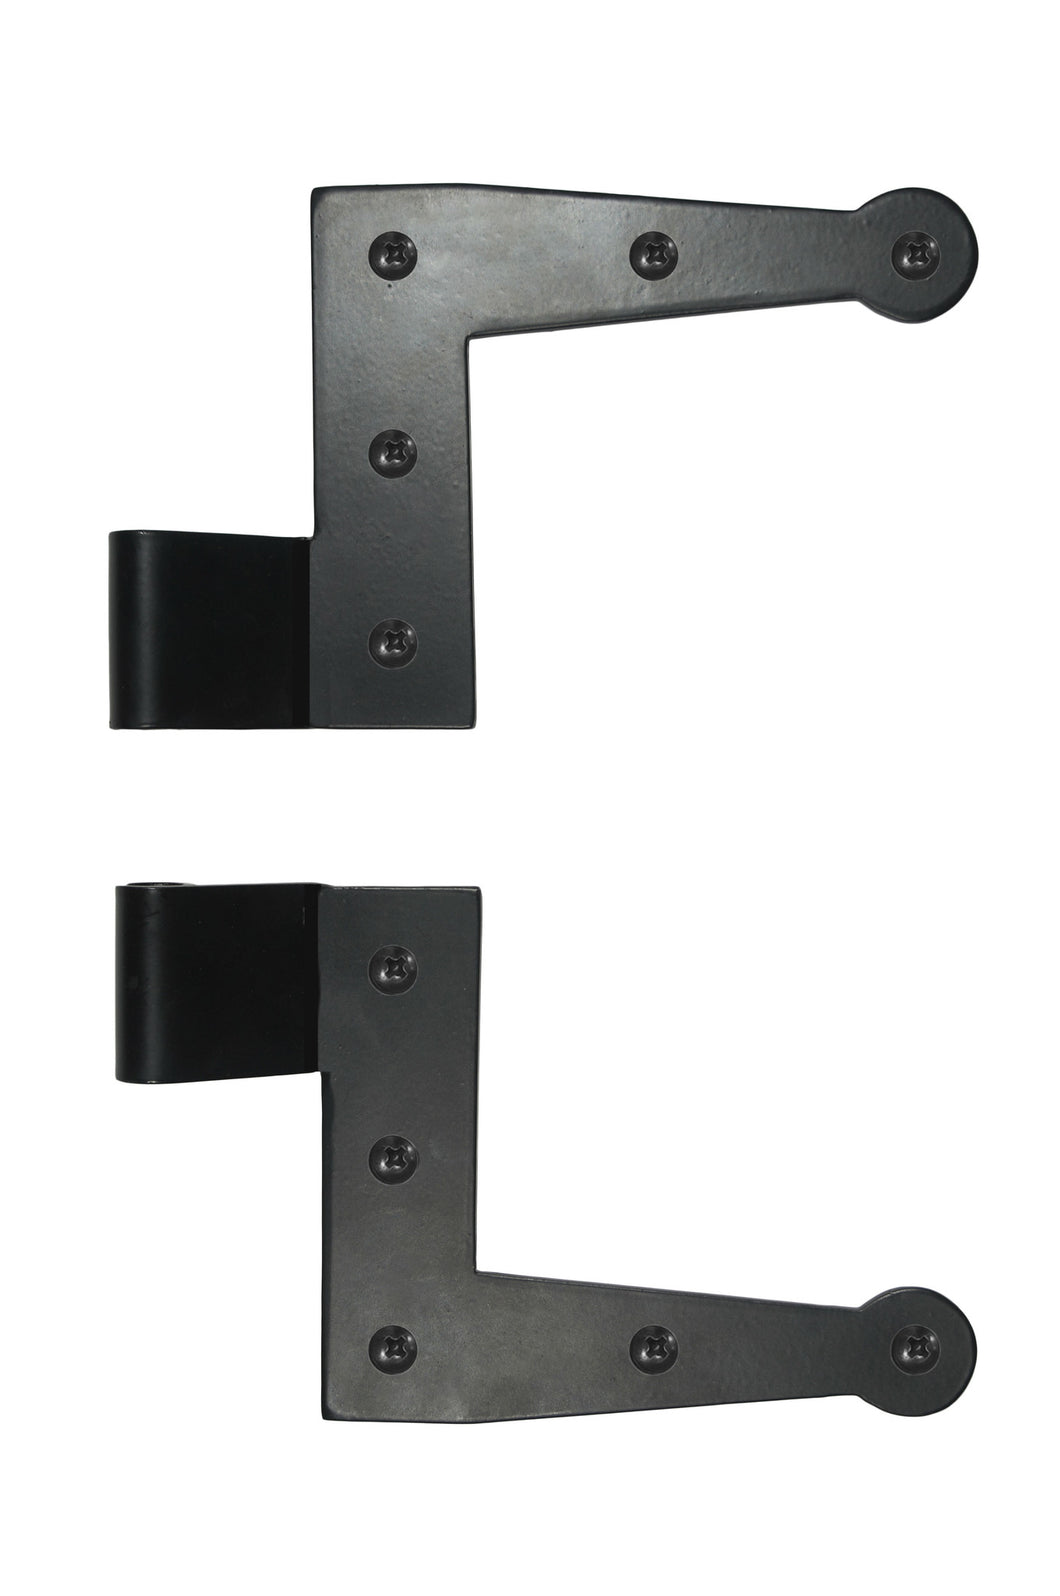 Suffolk Style L Hinge - 3/4'' Offset | Hardware